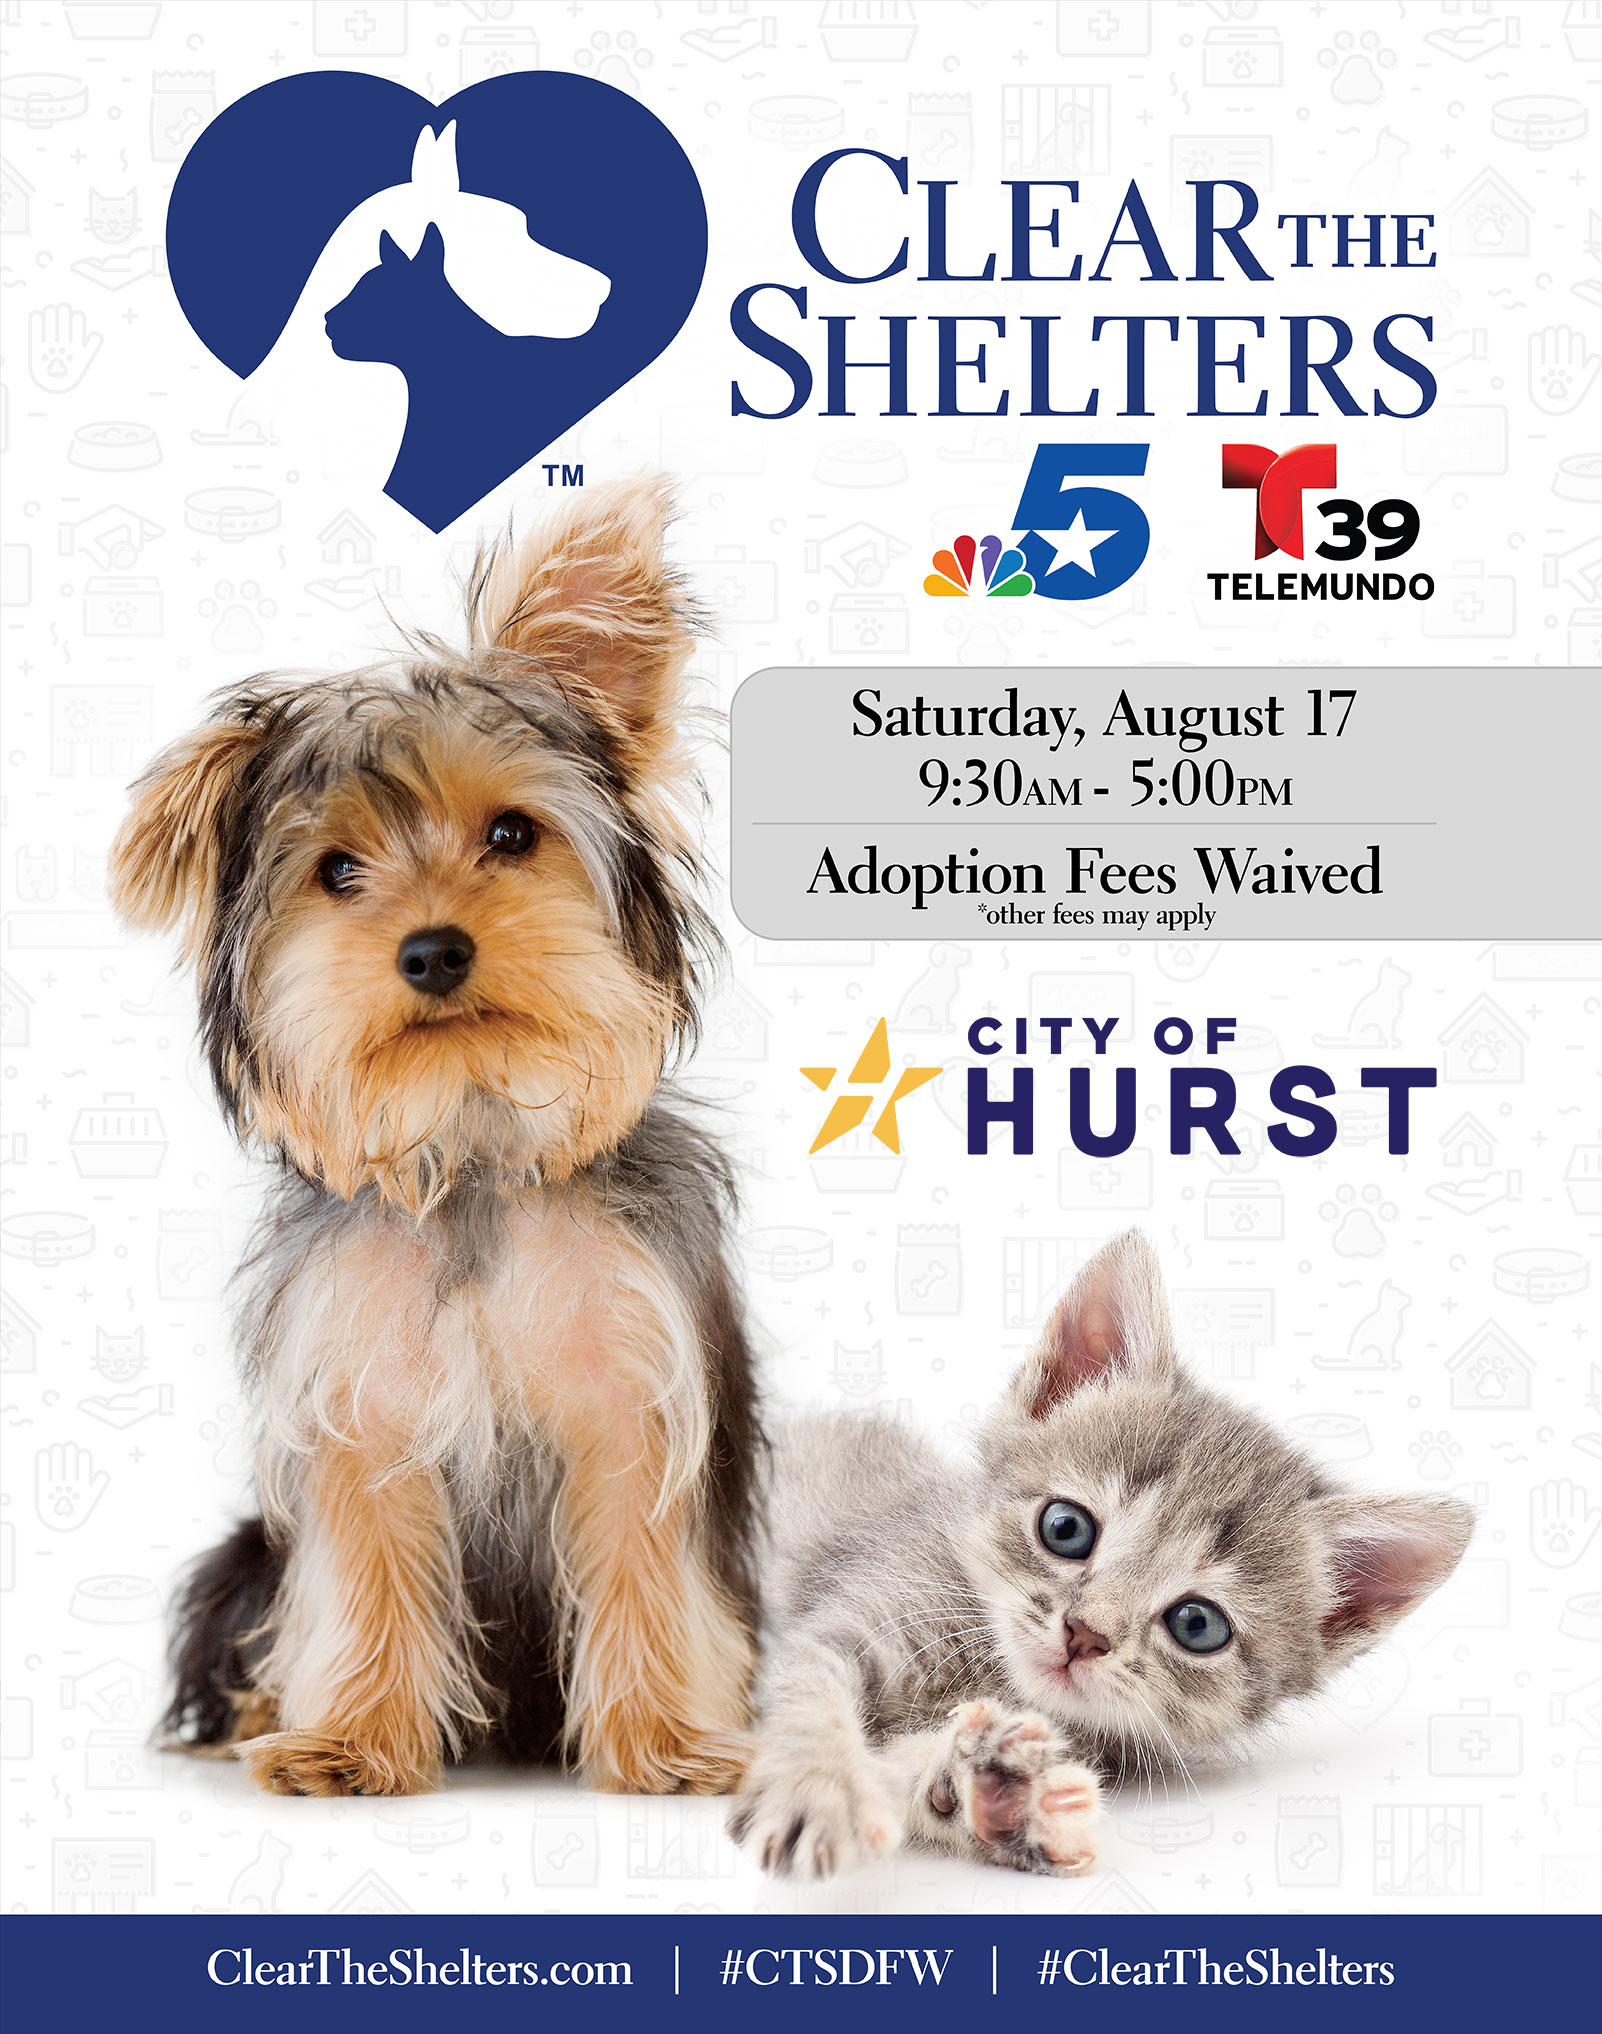 Clear the Shelters 2019 City of Hurst image